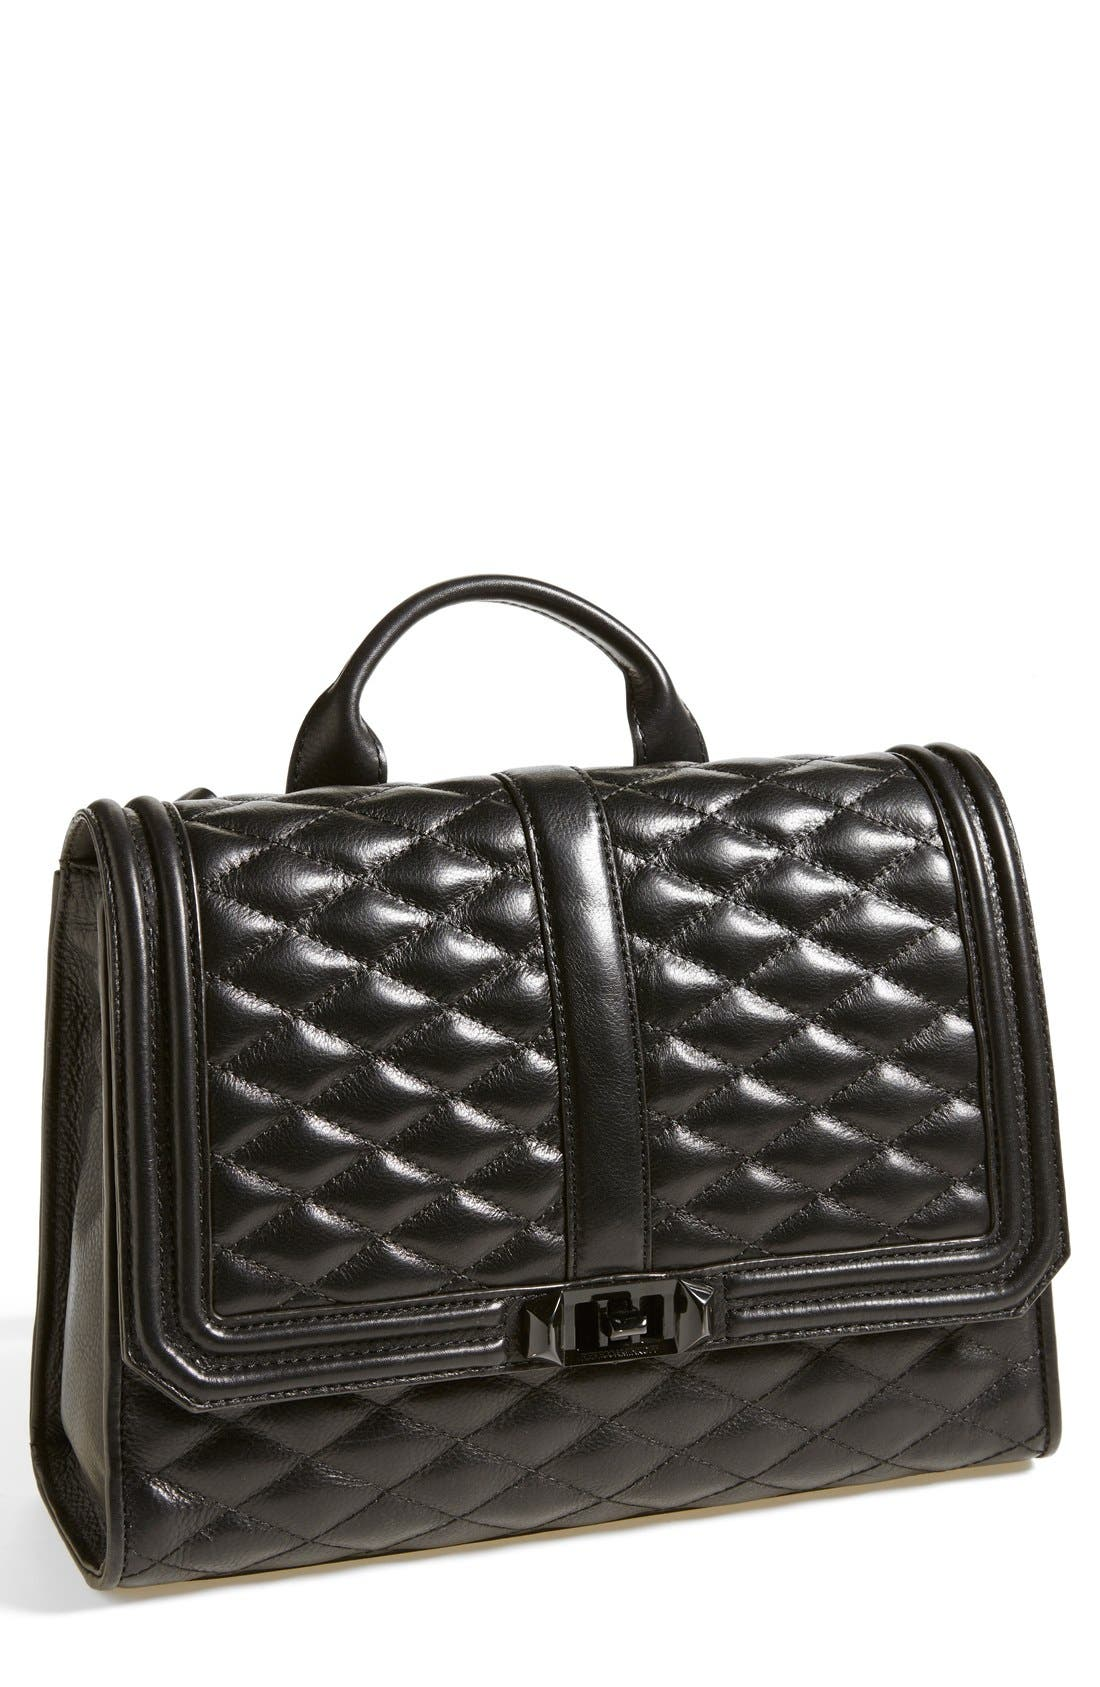 REBECCA MINKOFF, 'Quilted Love' Backpack, Main thumbnail 1, color, 001